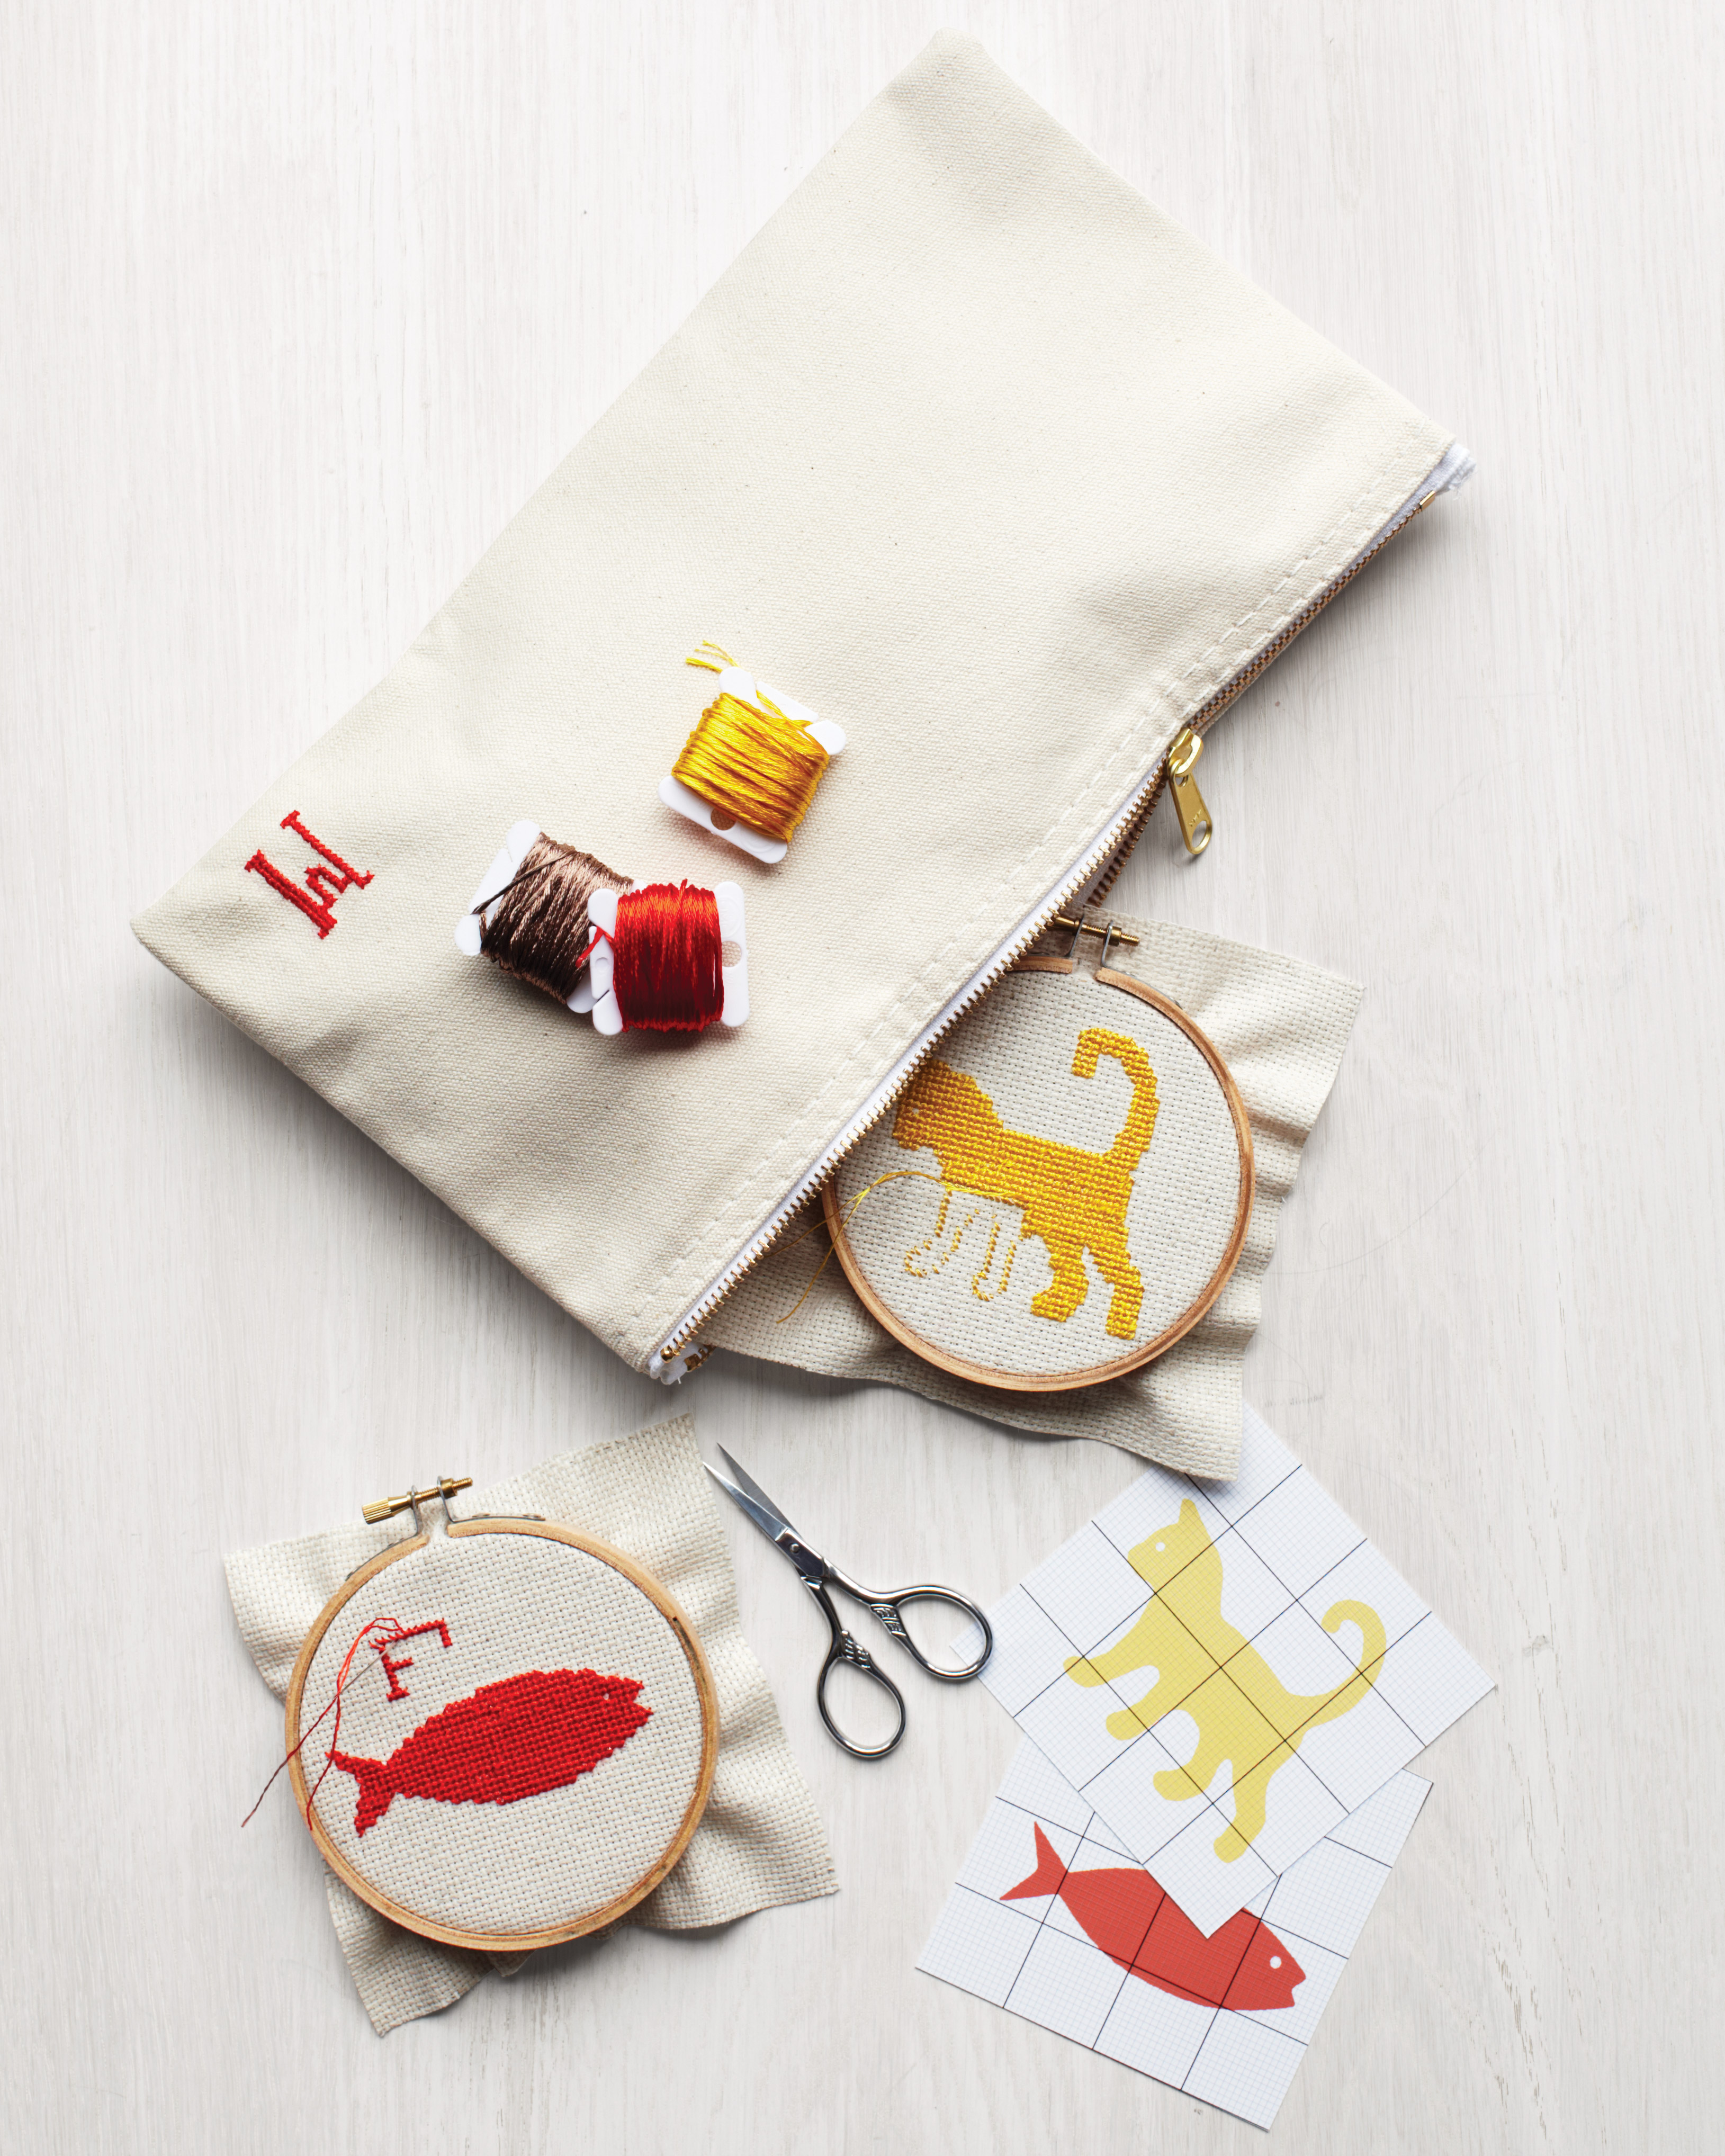 How to Cross Stitch in Embroidery